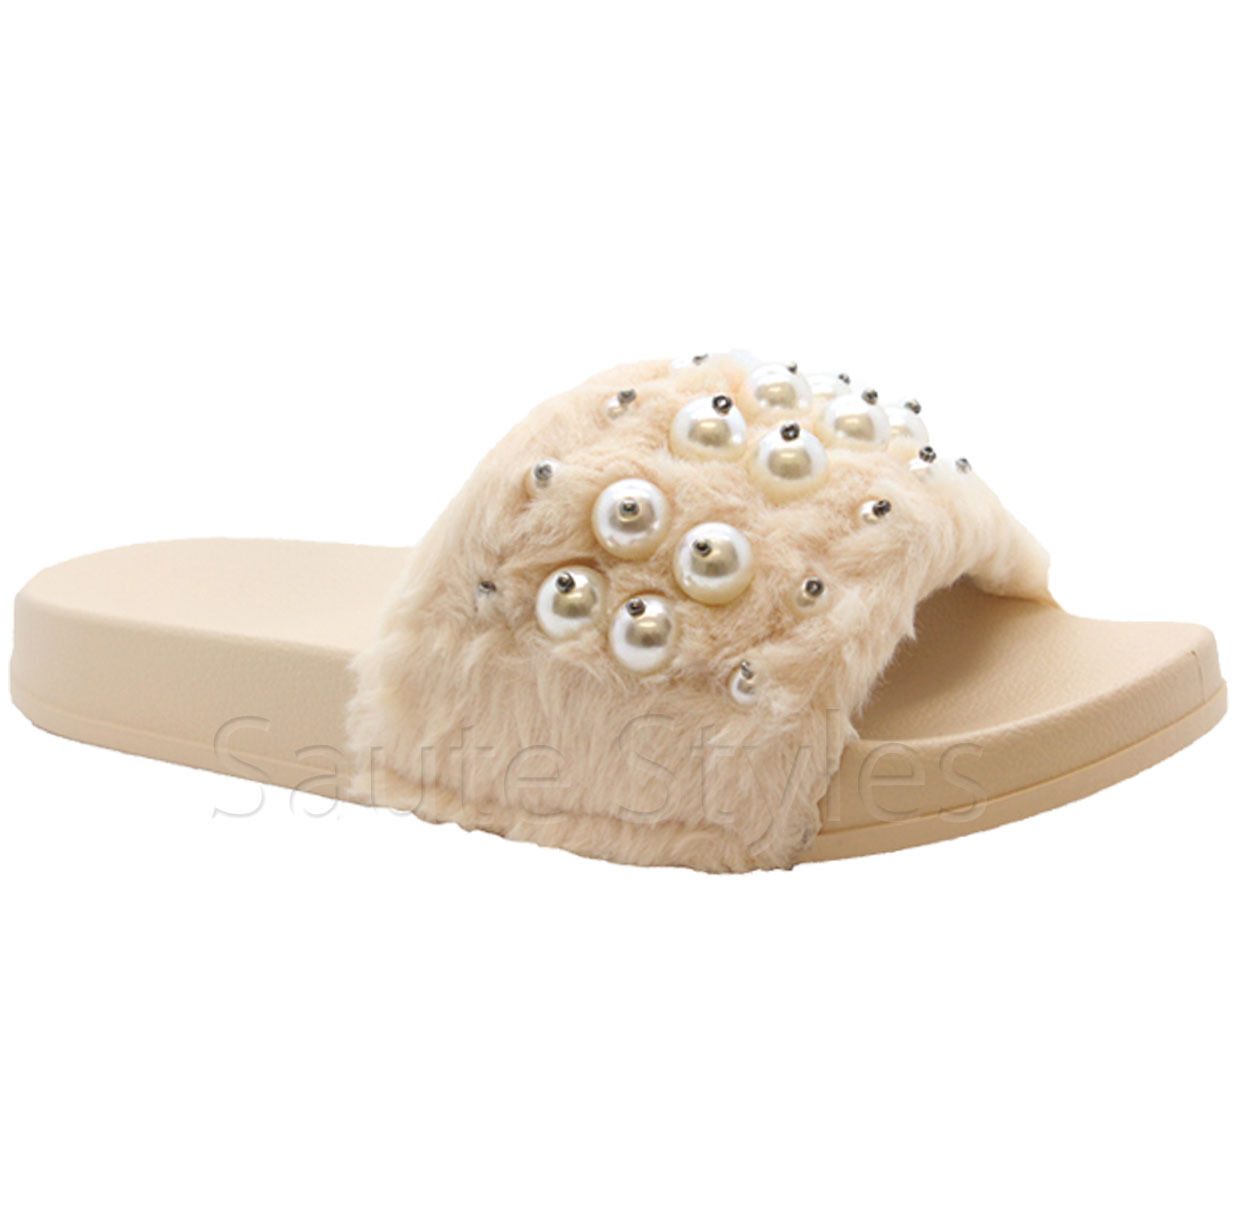 39f5ab583ce Ladies Womens Summer Pearl Farrah Fur Rubber Slip On Sliders Mules ...